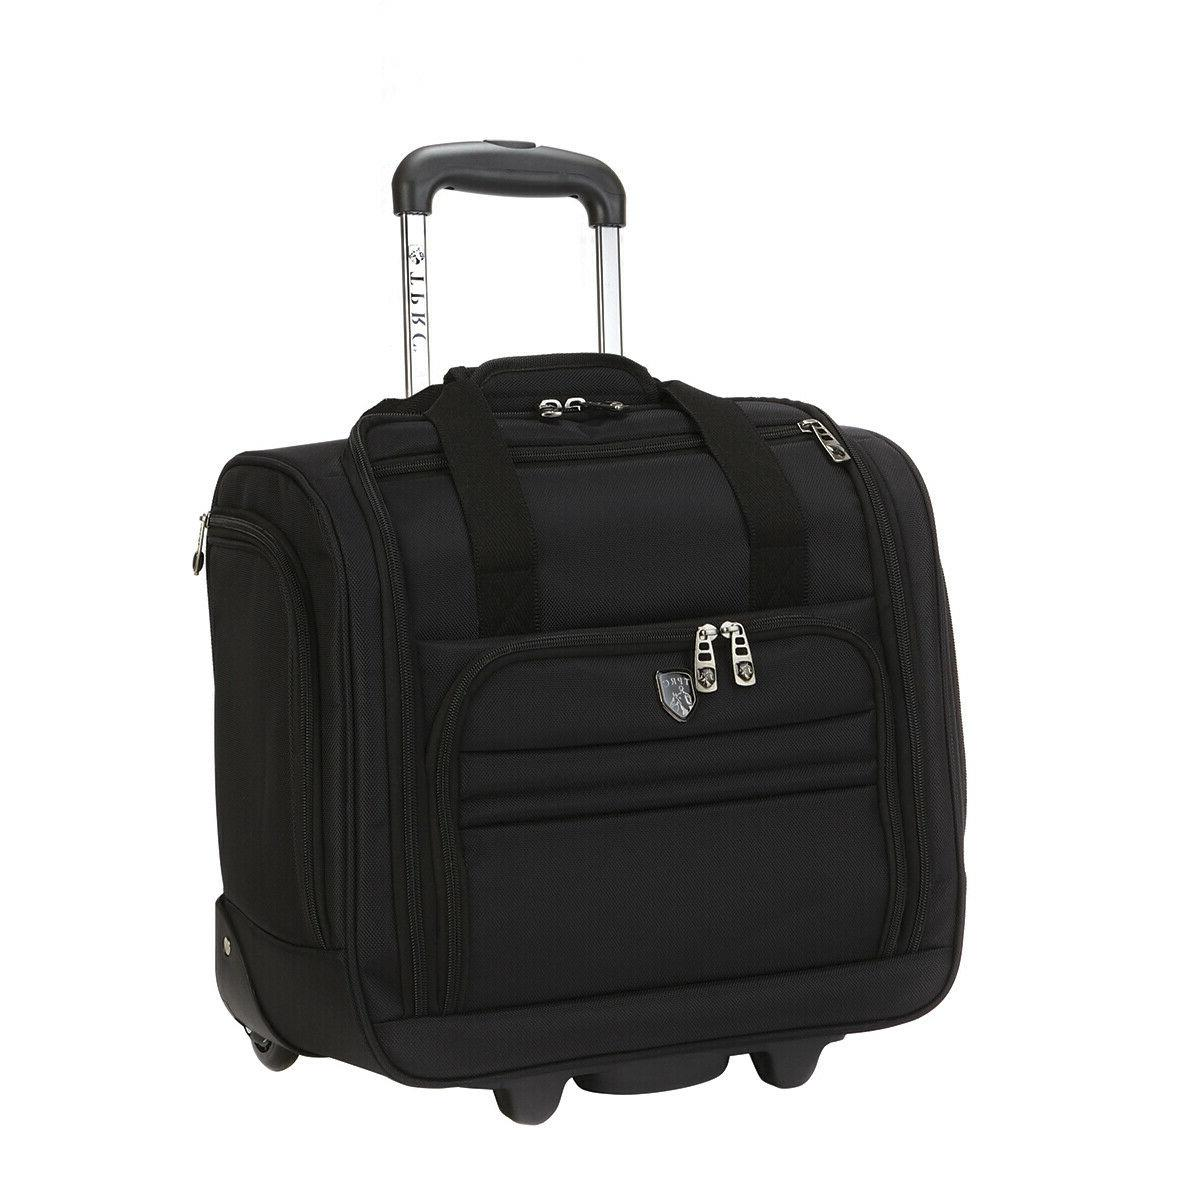 ROLLING LUGGAGE Business Bags Carry